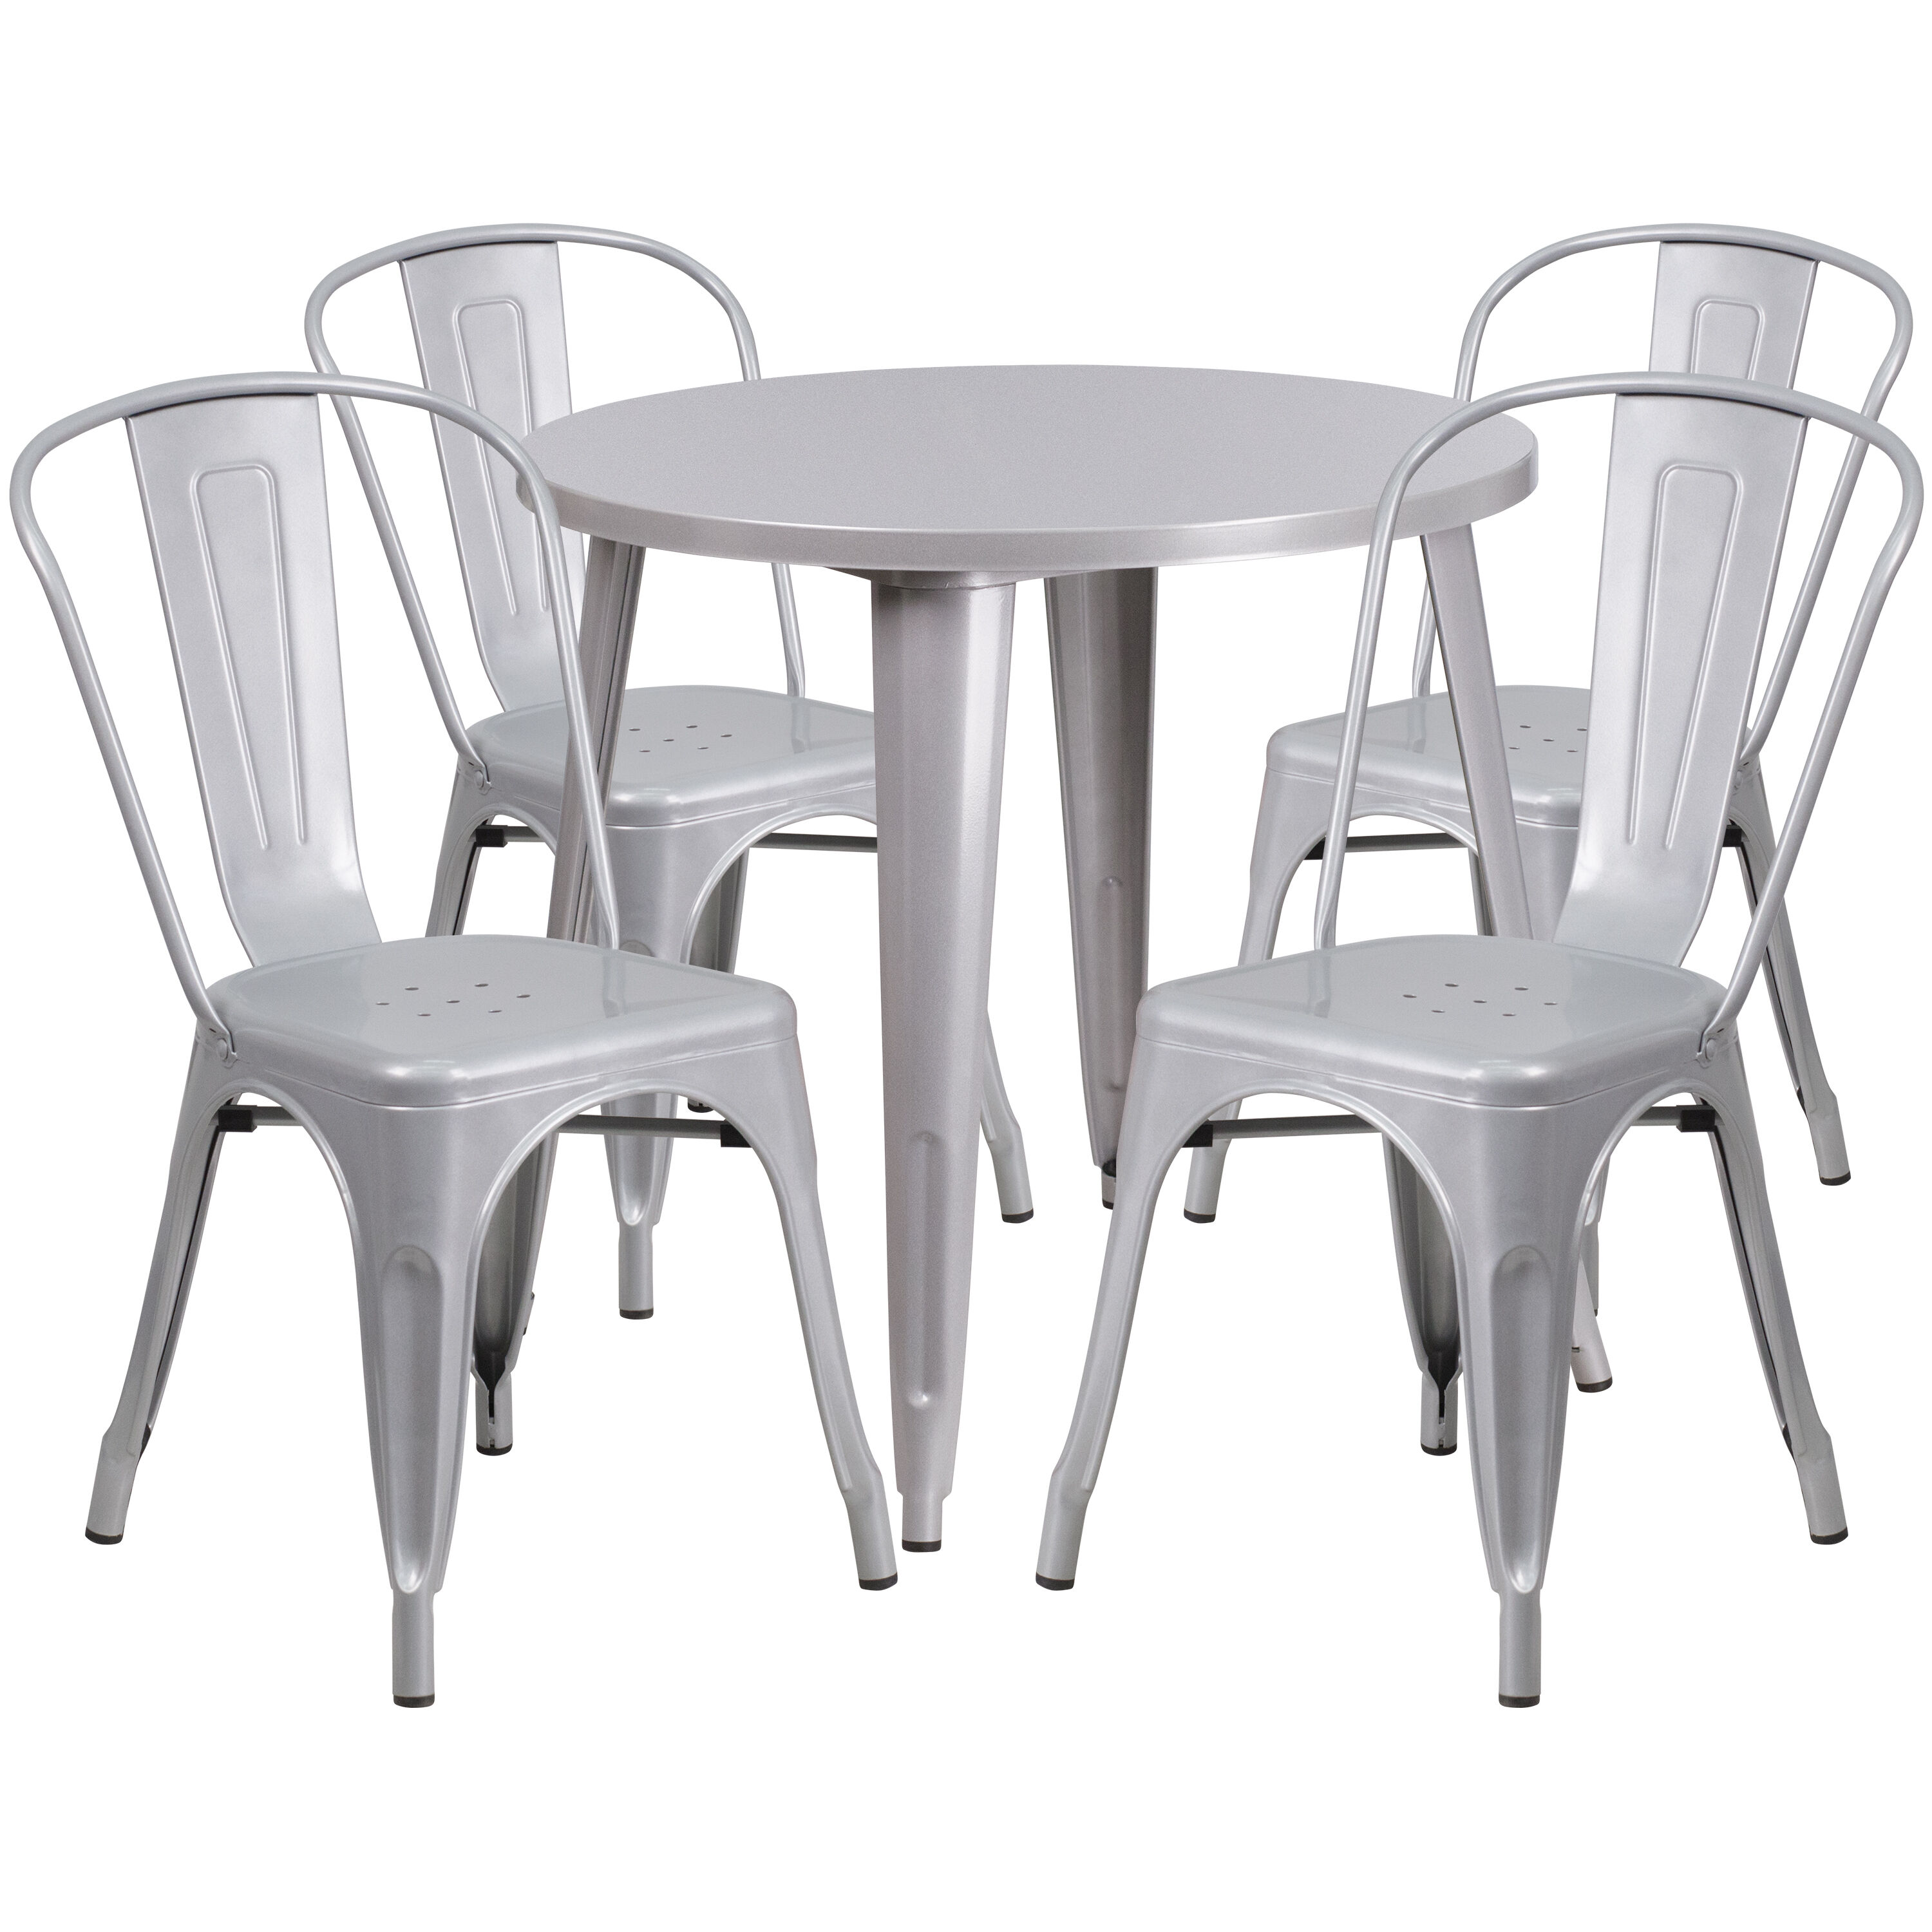 cafe chairs metal fishing camping chair 30rd silver set ch 51090th 4 18cafe sil gg restaurantfurniture4less com